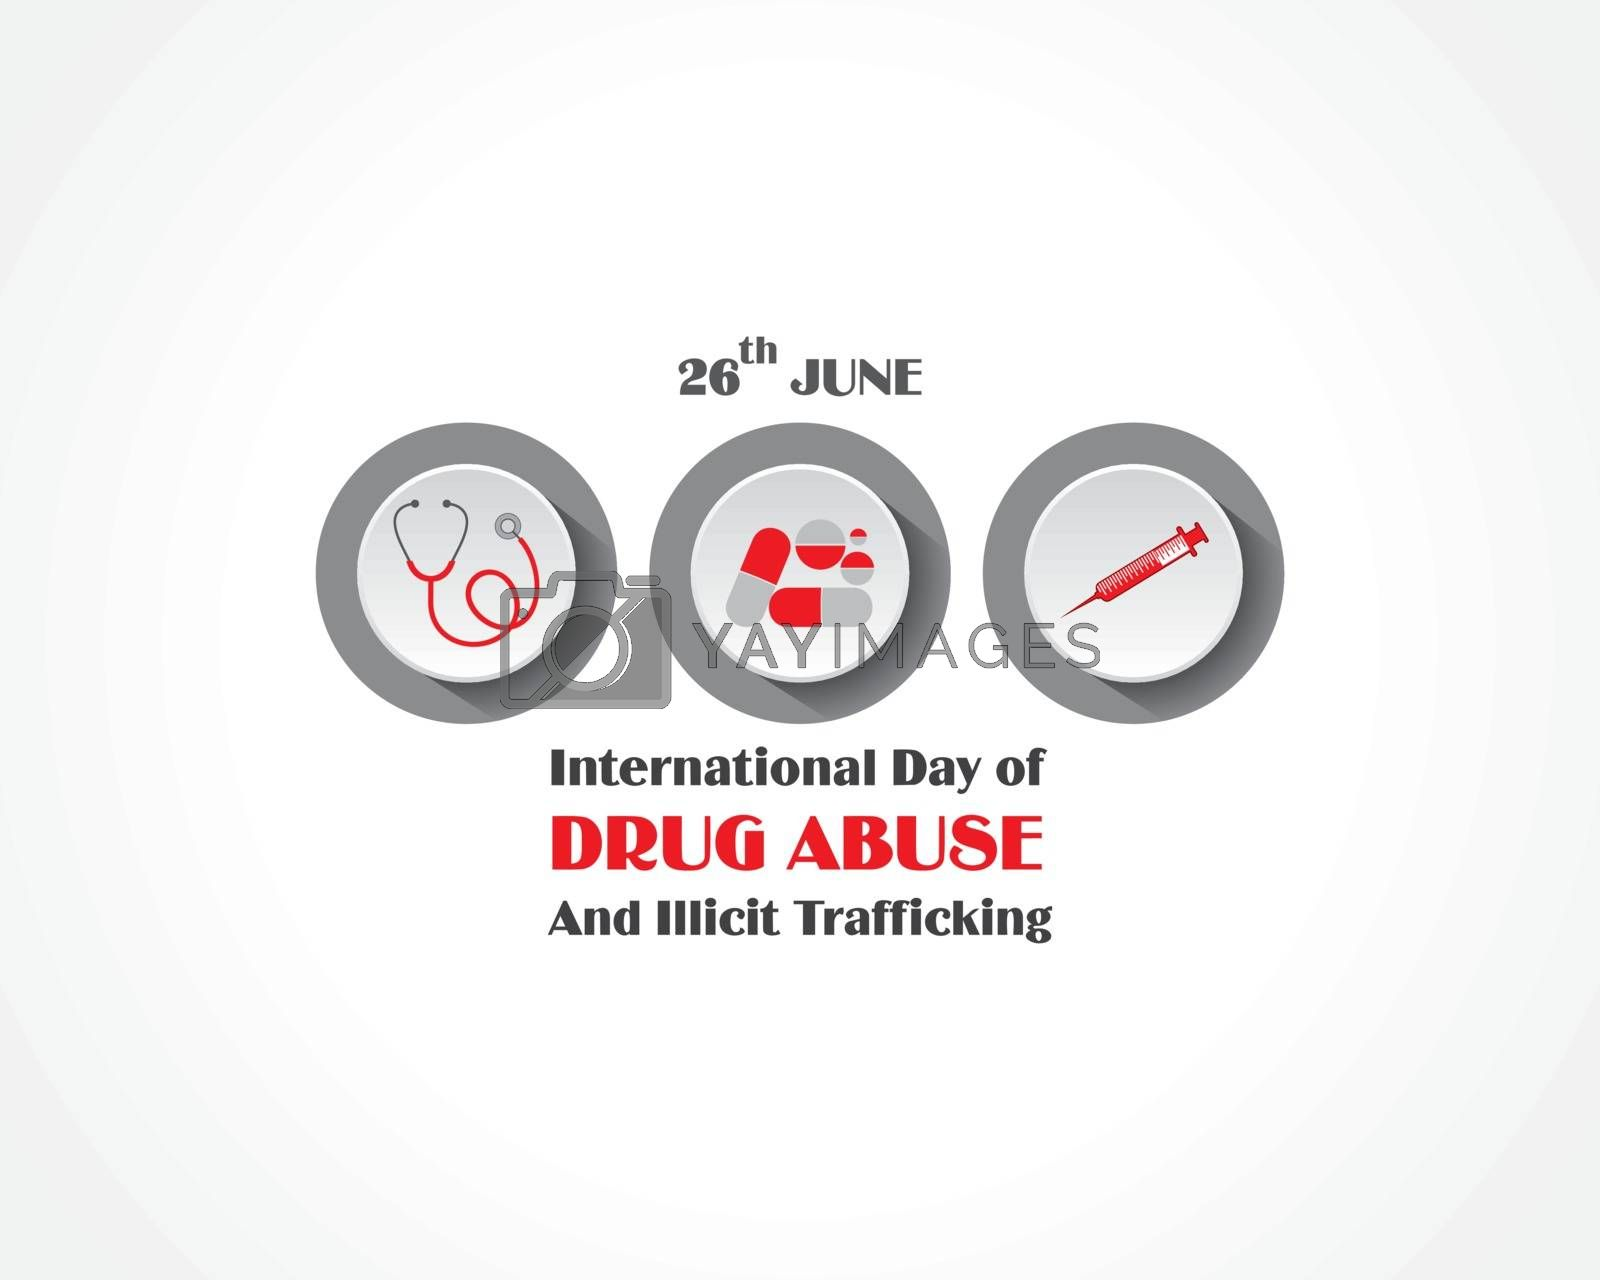 International Day against DRUG ABUSE and trafficking observed on 26th JUNE by graphicsdunia4you